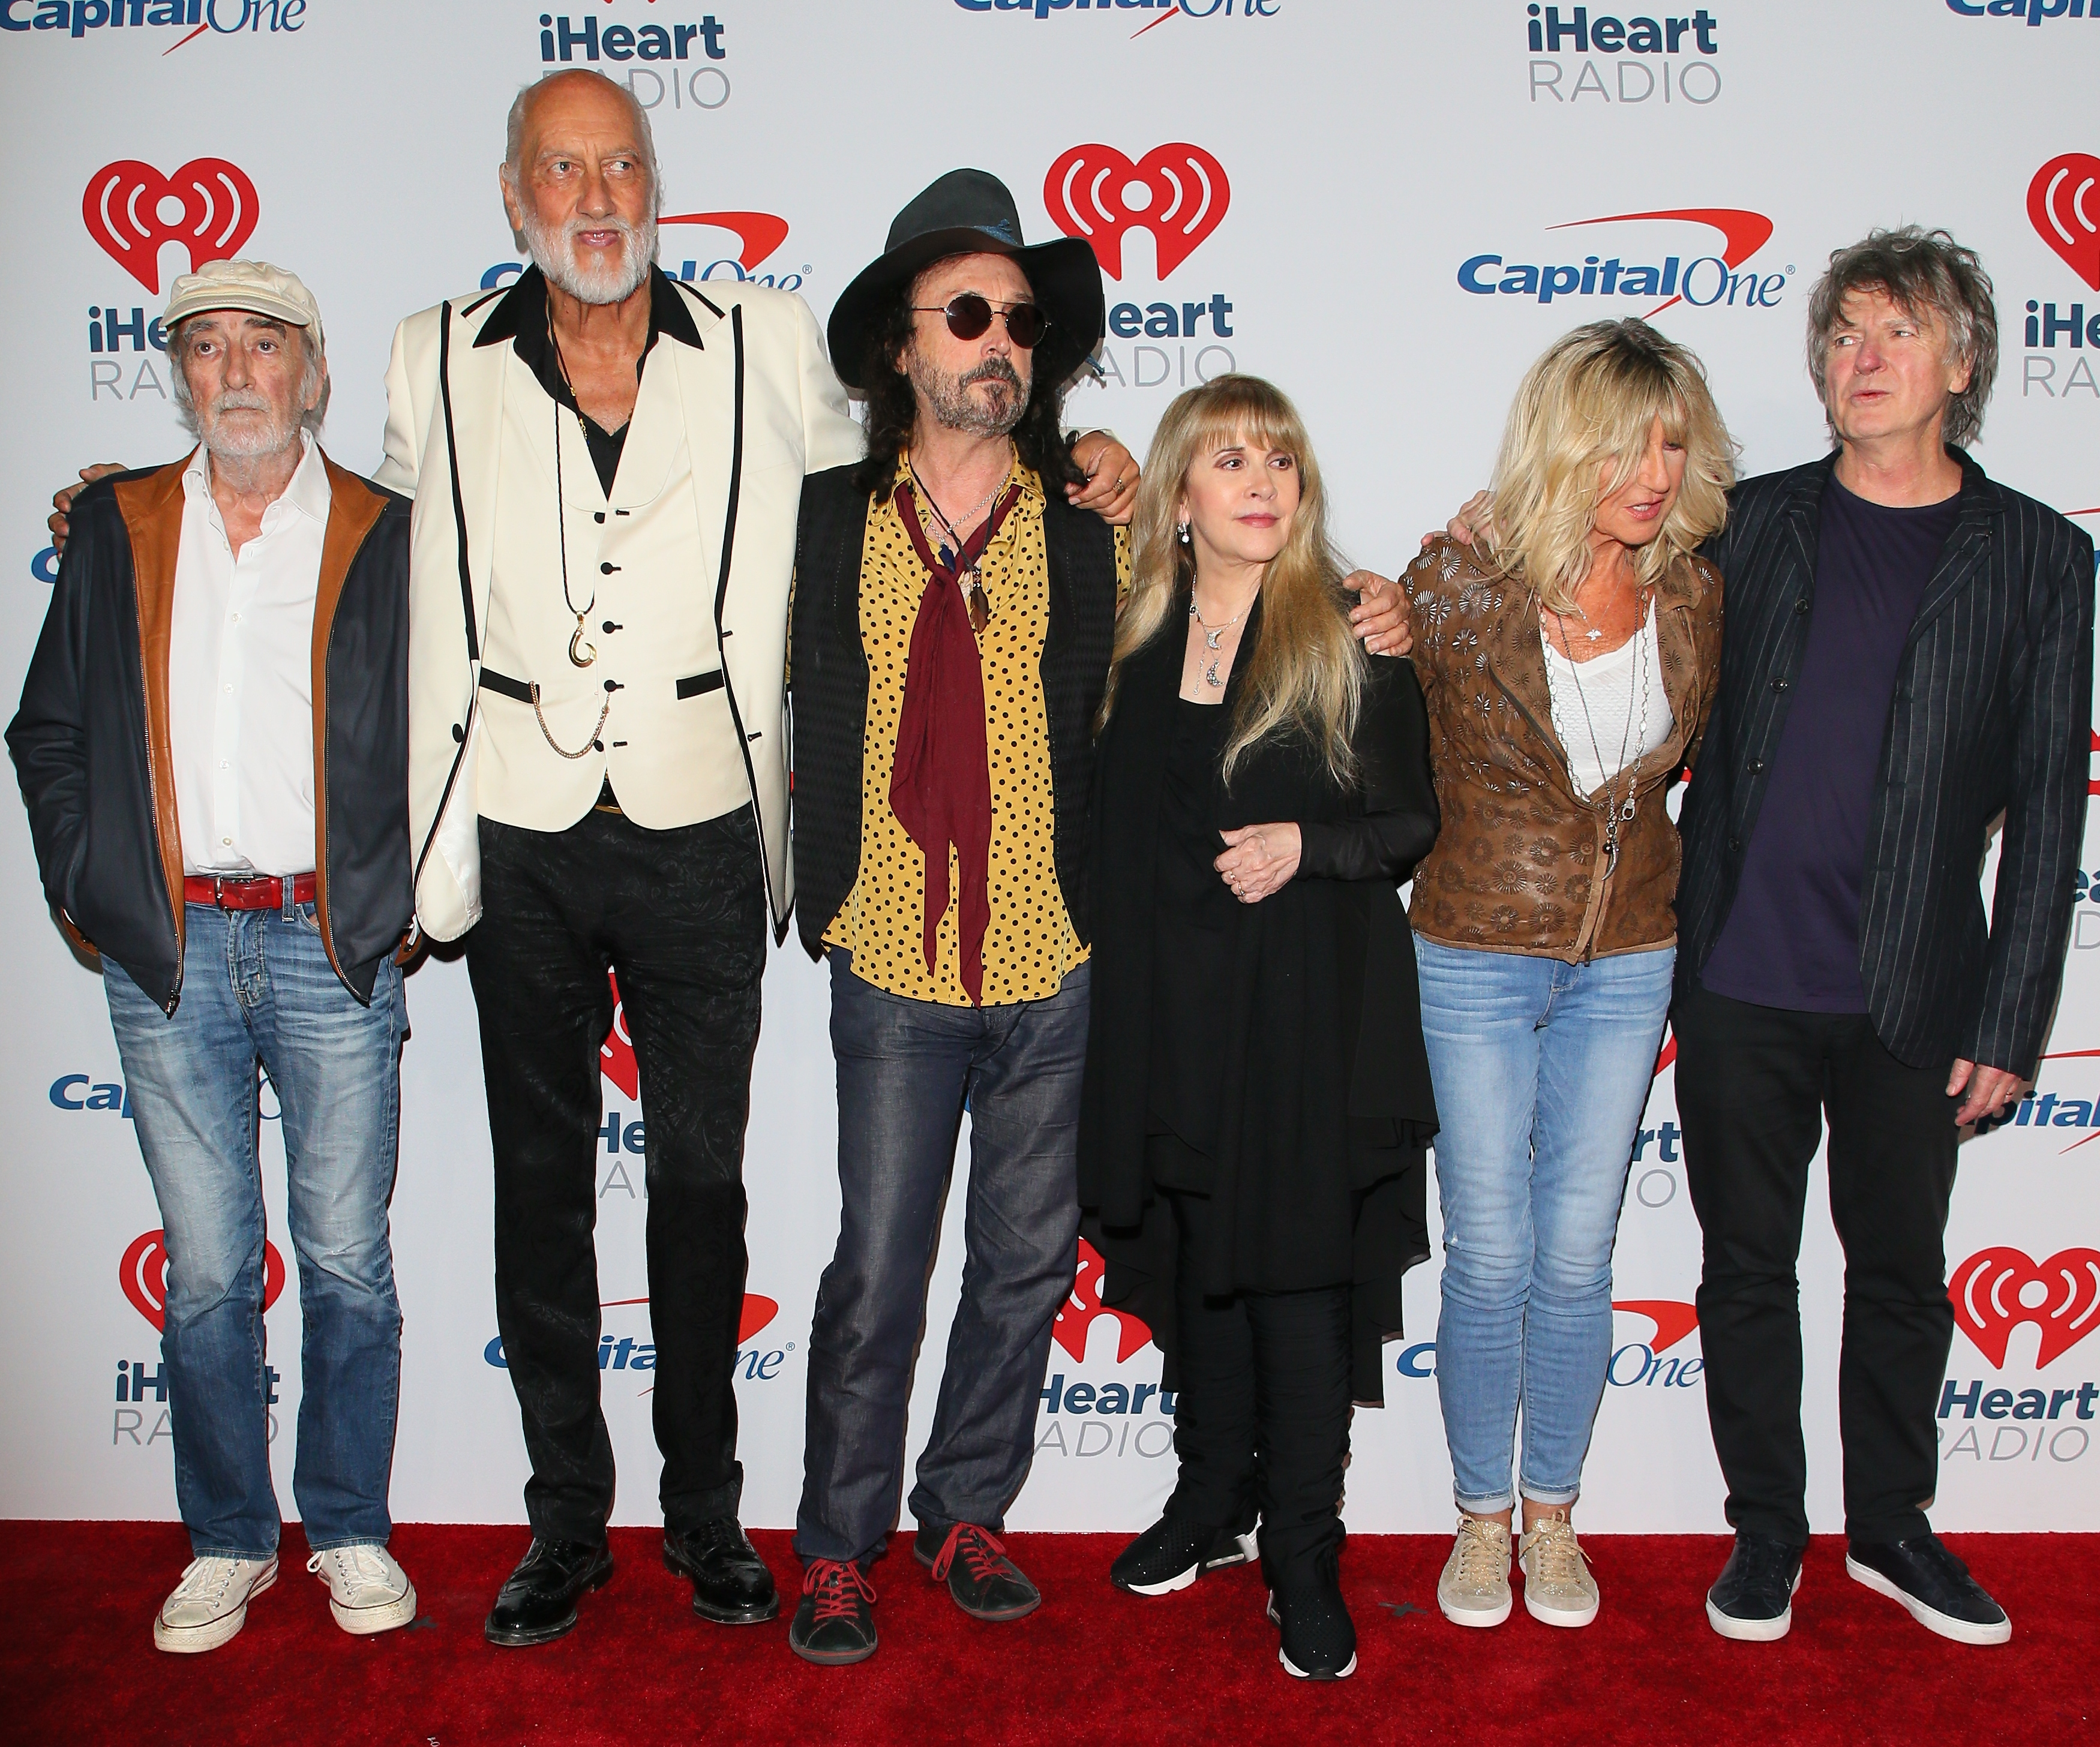 LAS VEGAS, NV - SEPTEMBER 21: John McVie, Mick Fleetwood, Mike Campbell, Stevie Nicks, Christine McVie and Neil Finn of Fleetwood Mac attend the 2018 iHeartRadio Music Festival at T-Mobile Arena on September 21, 2018 in Las Vegas, Nevada. (Photo by JB Lacroix/WireImage)